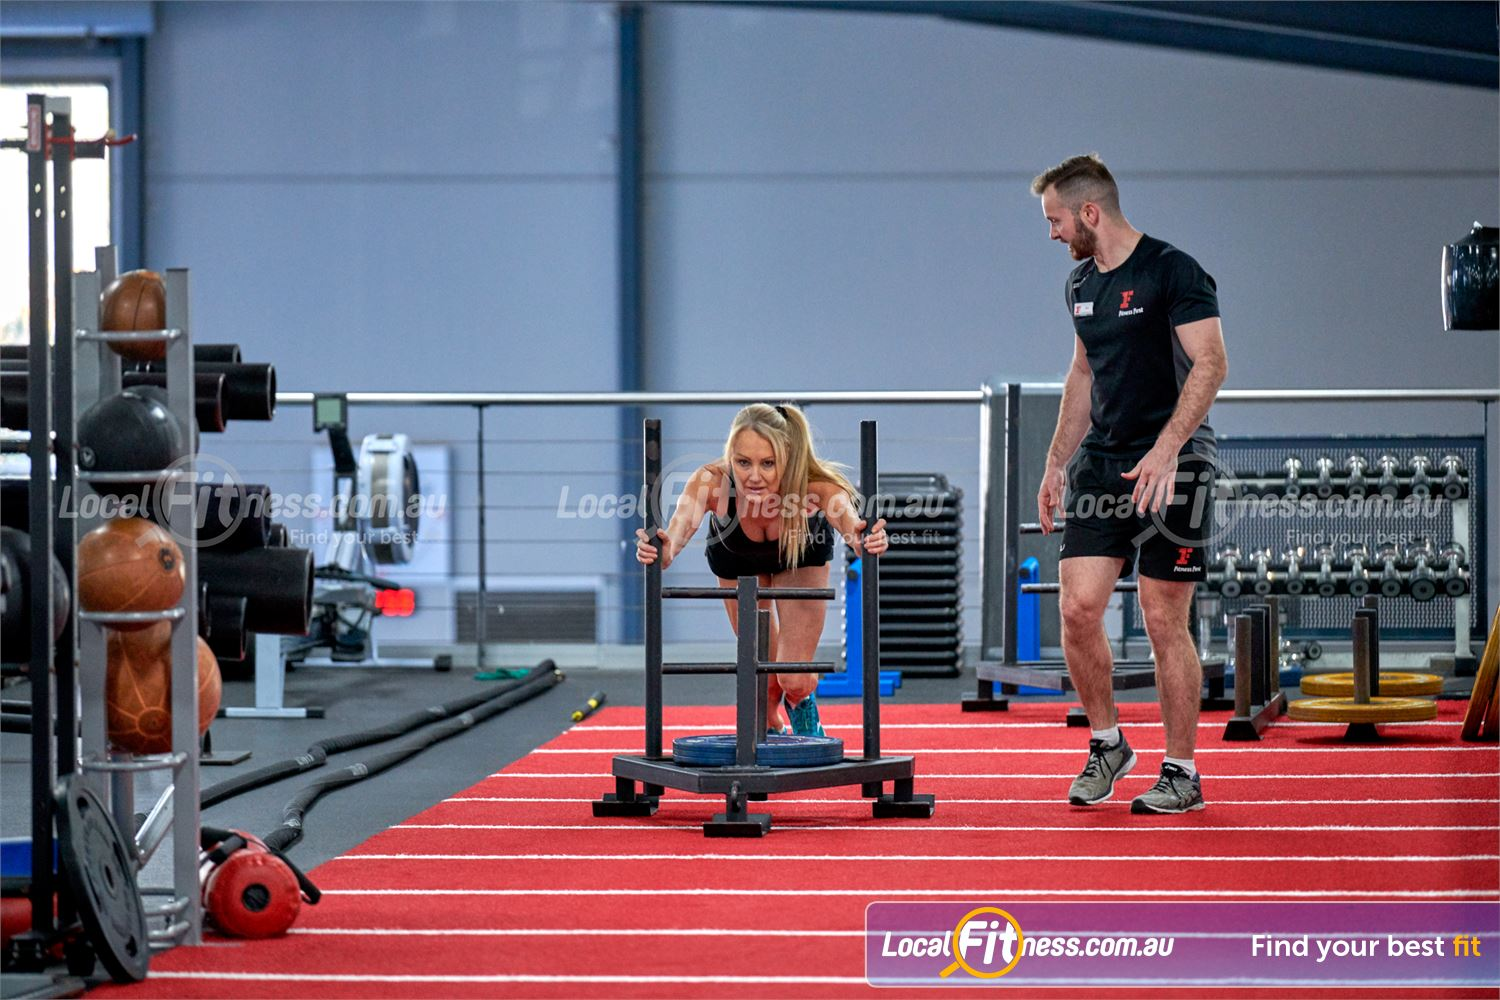 Fitness First Bayside Near Cheltenham Our Bayside personal training can show you how to do prowler sled runs.